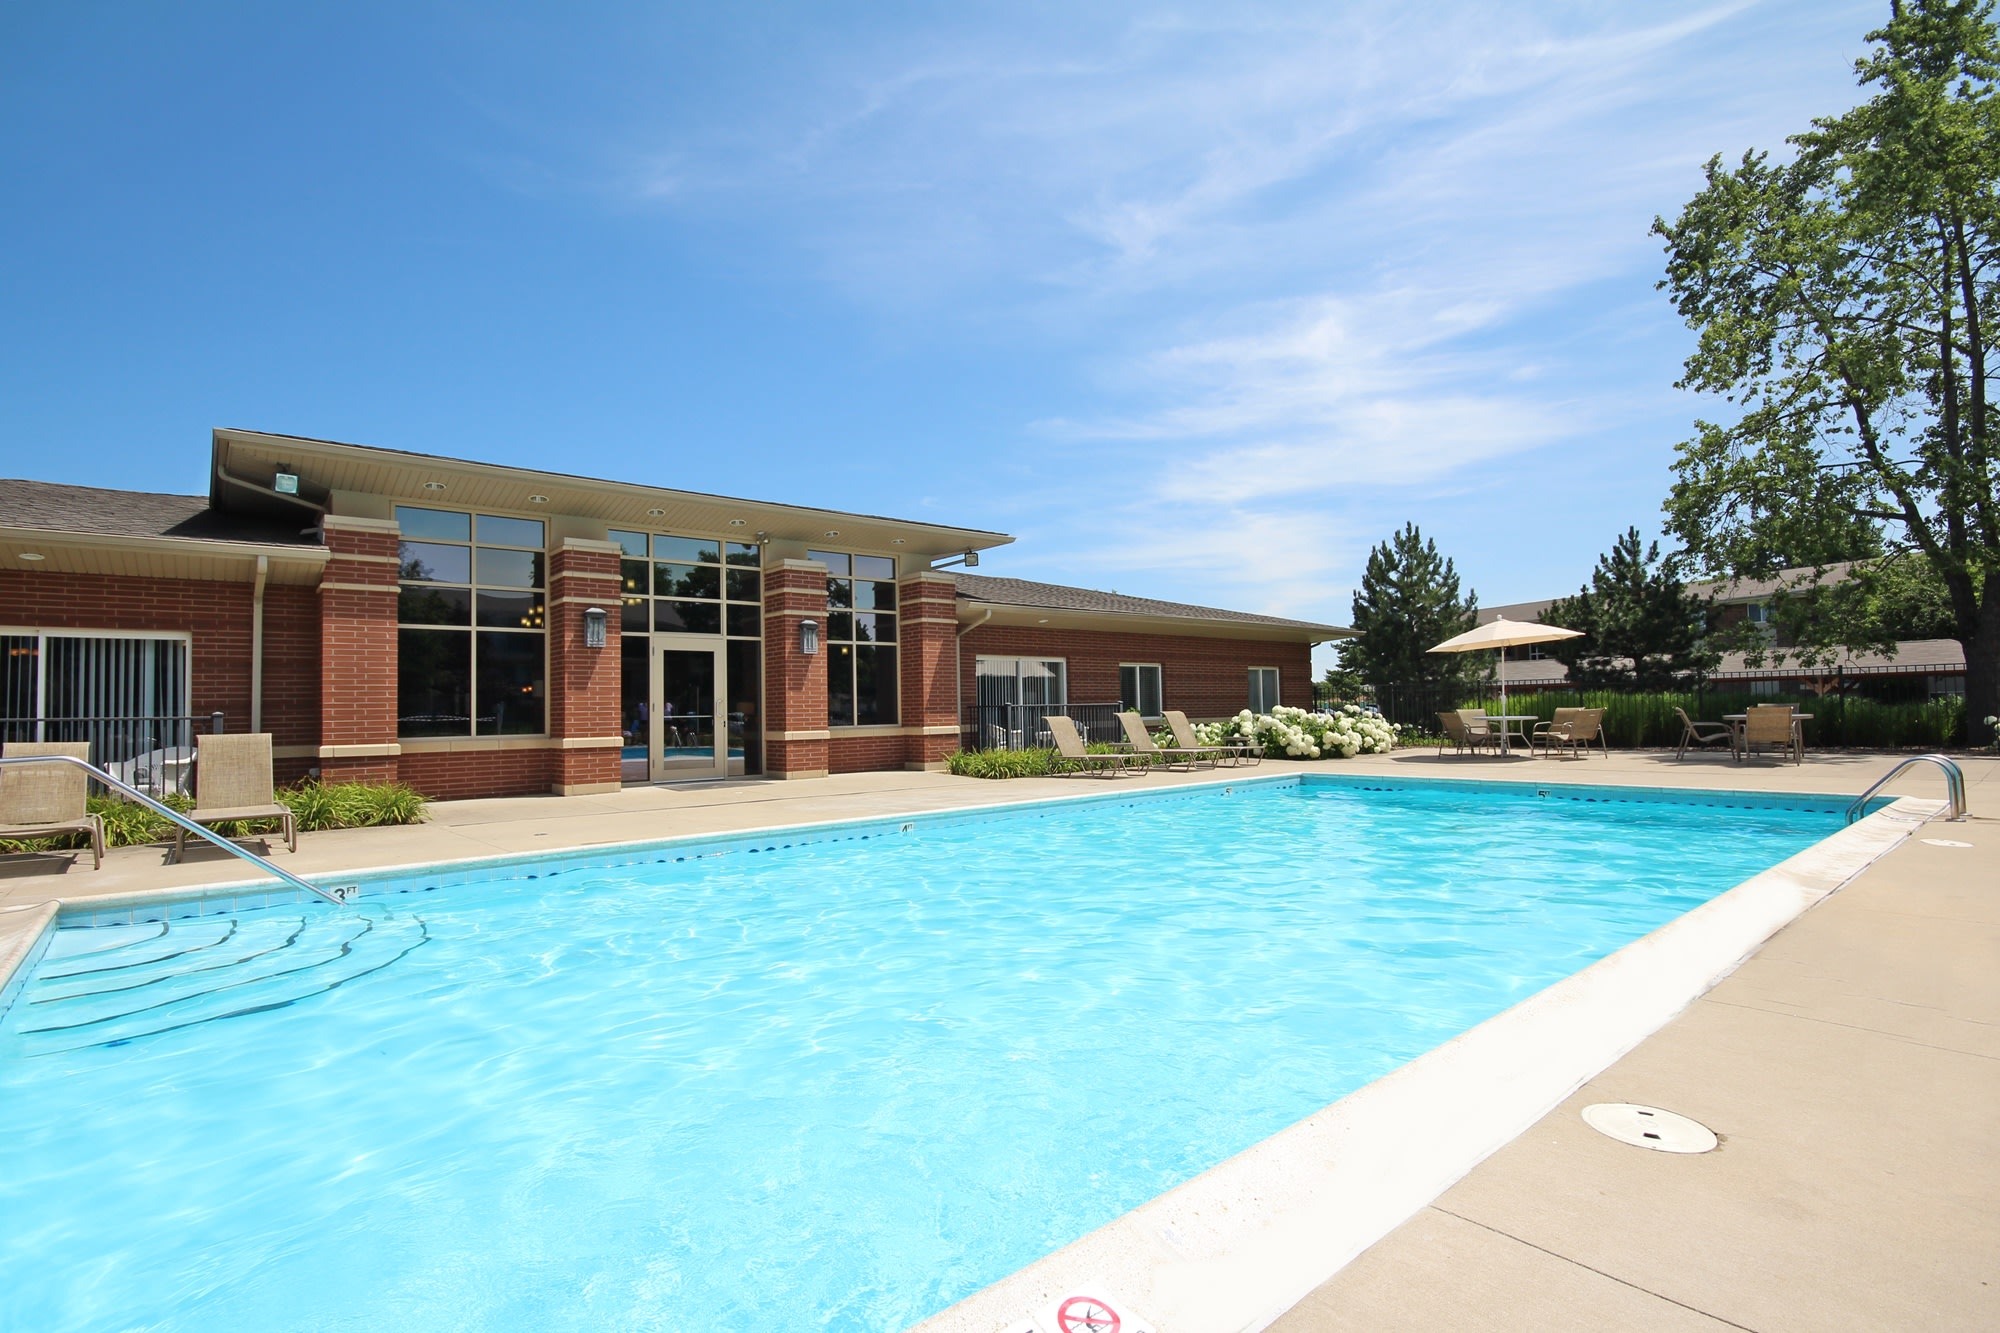 20 Best Apartments In Vernon Hills IL with pictures